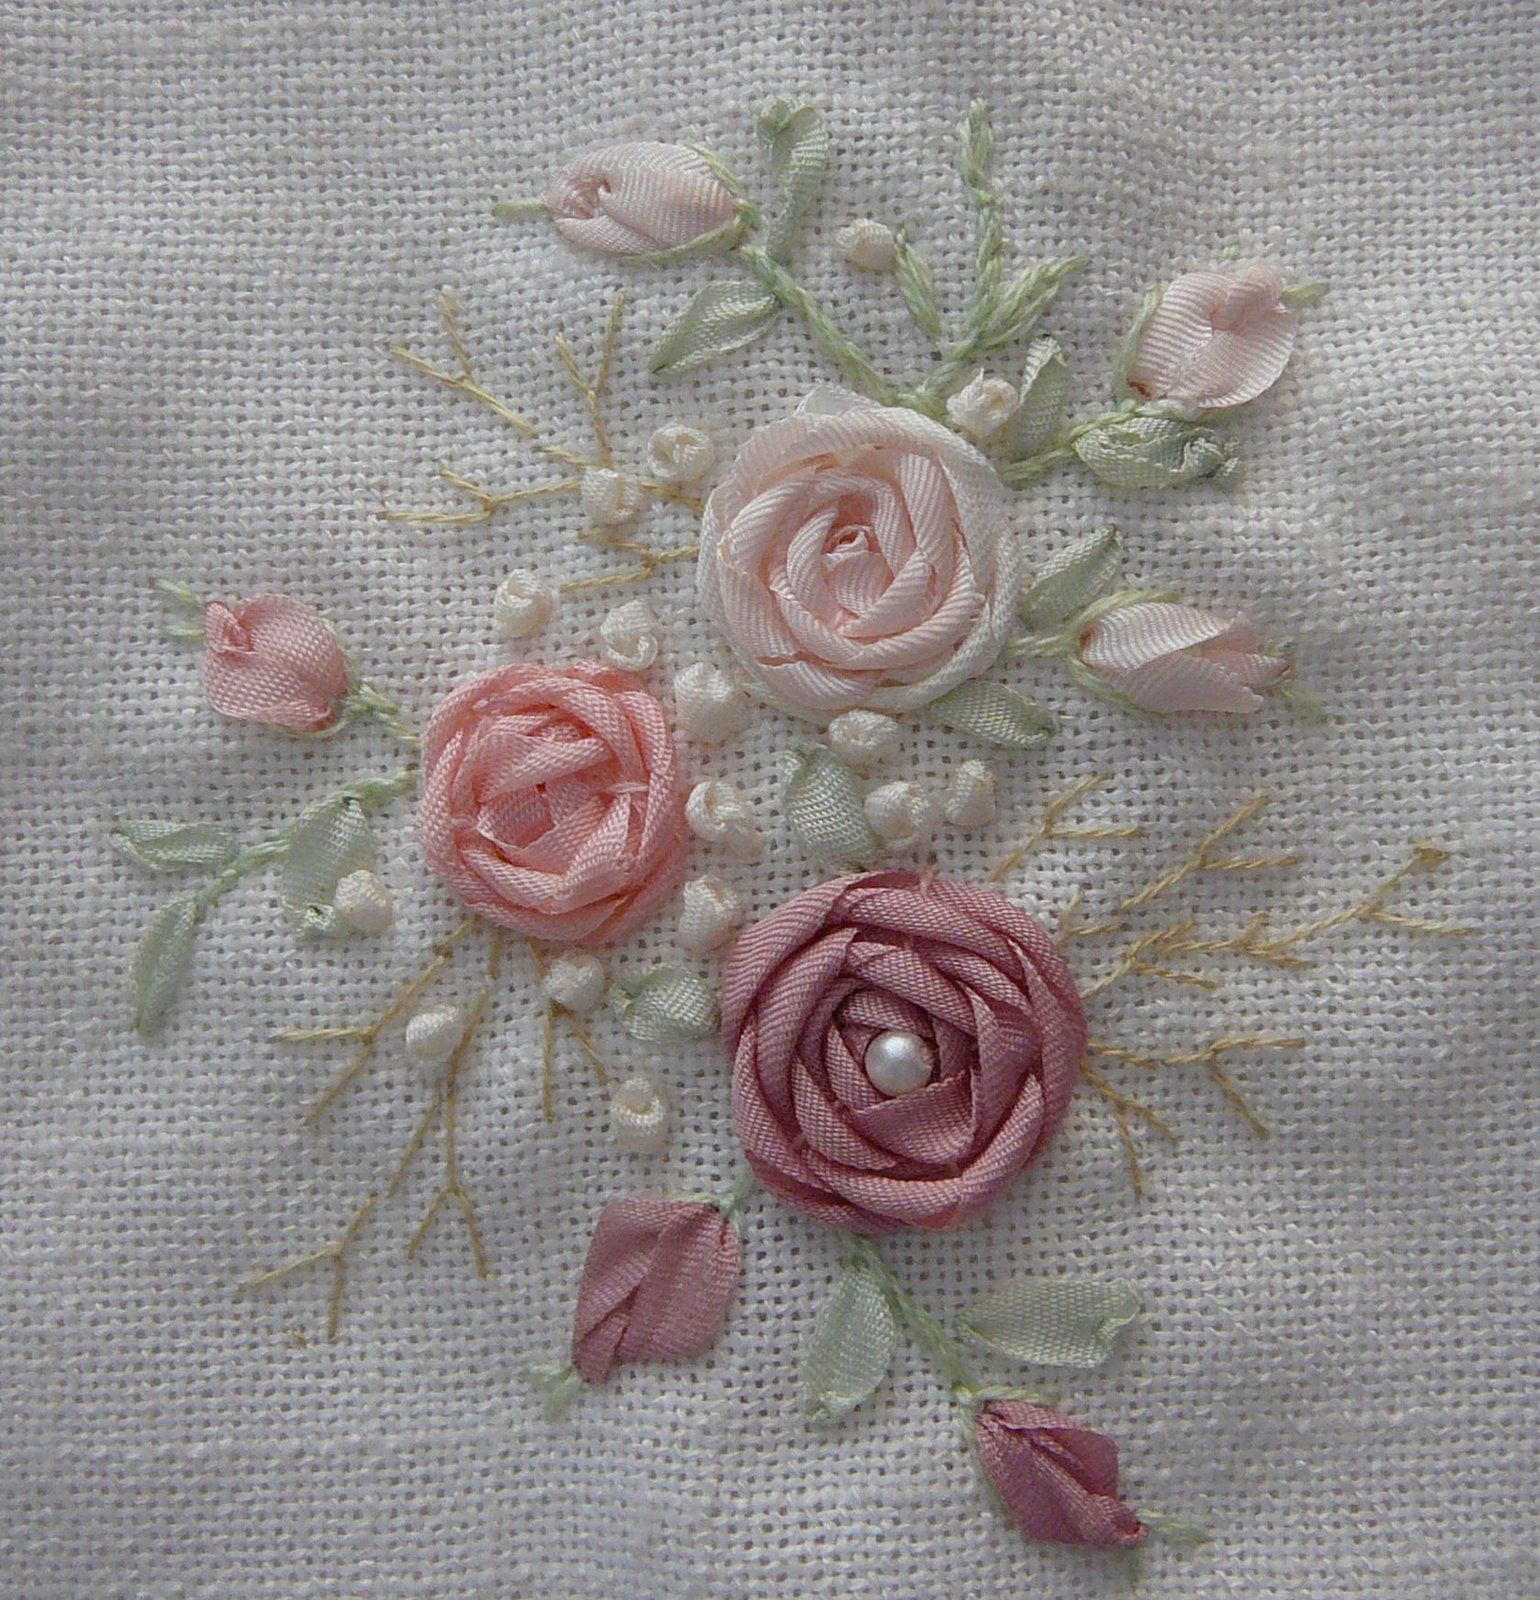 Silk ribbon embroidery french knots in sre